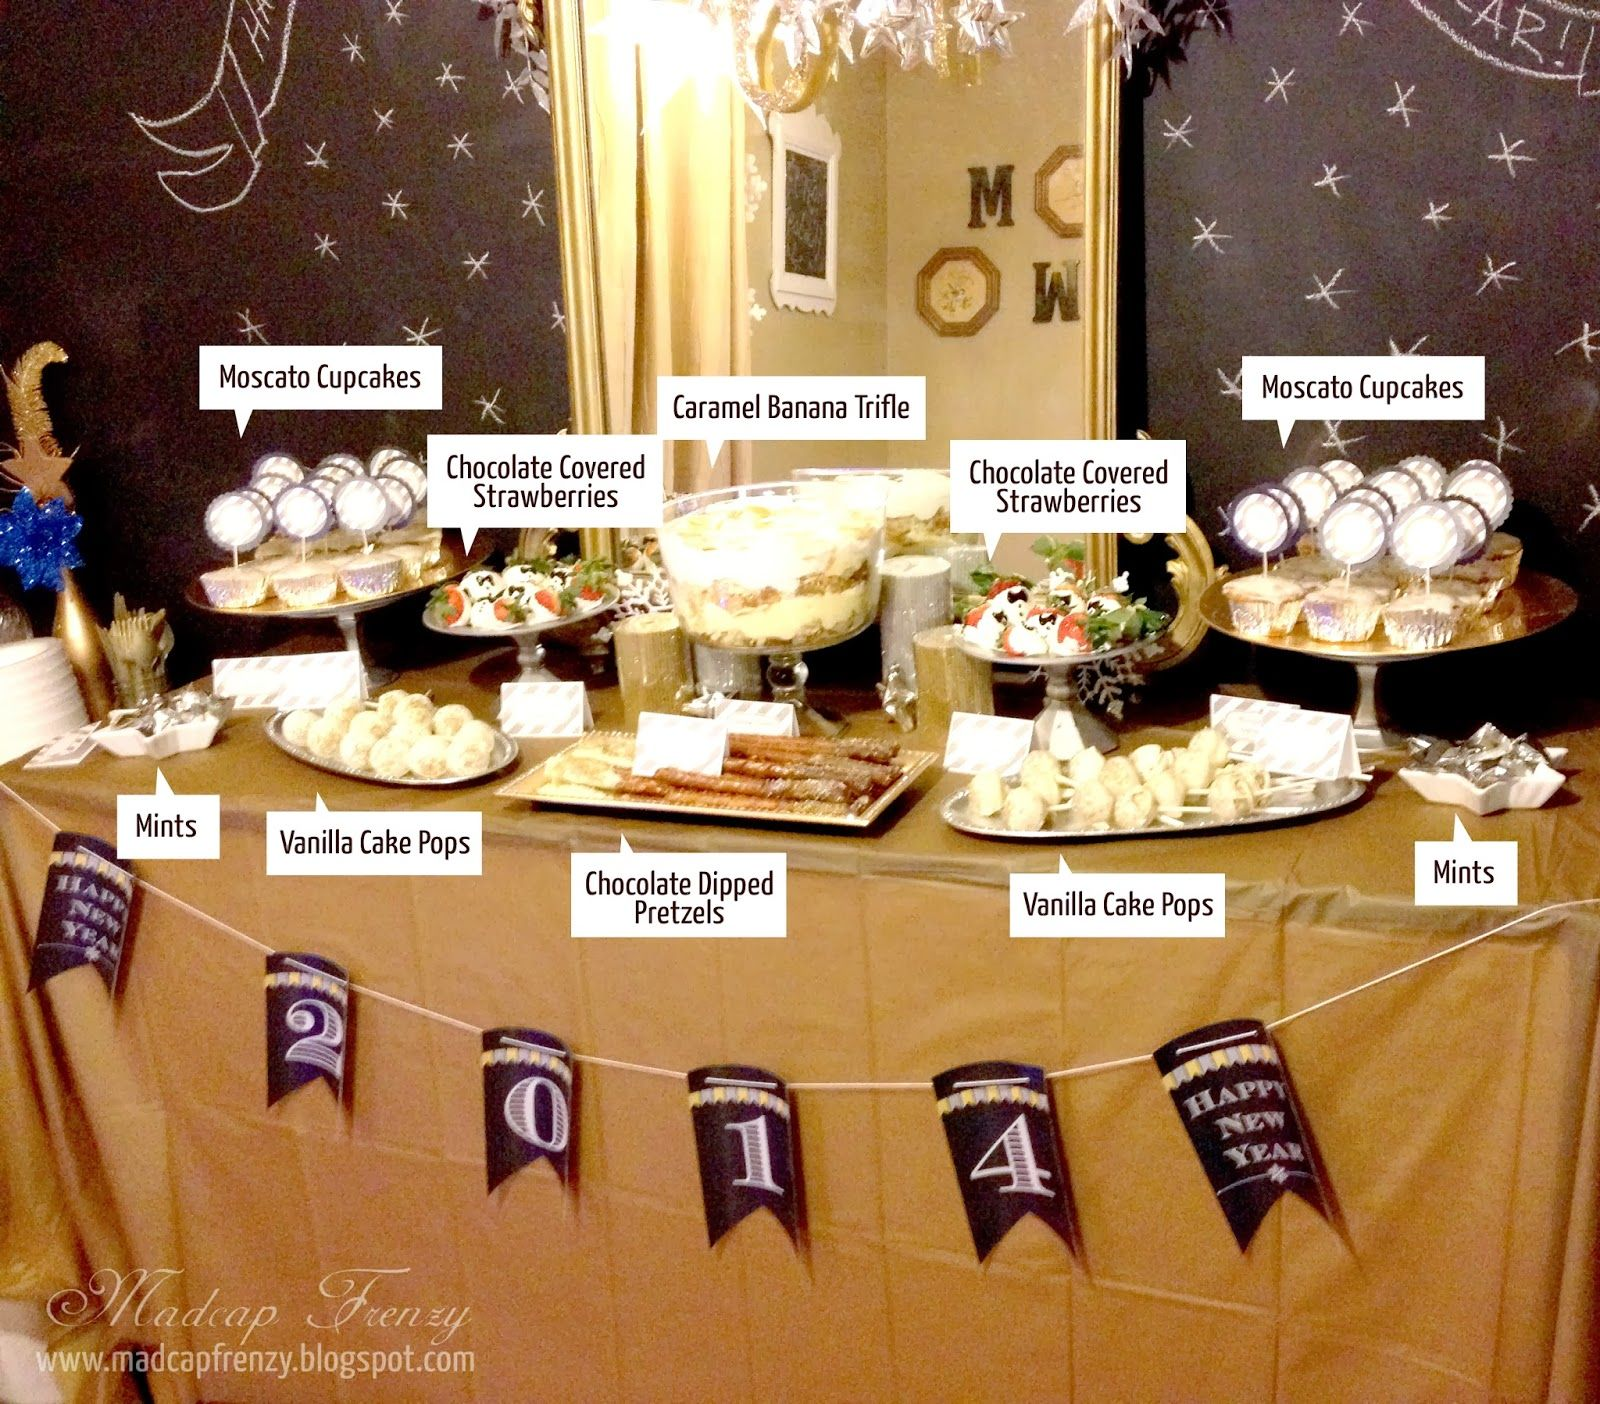 Madcap Frenzy S Suits And Sparkles New Years Eve Party Anatomy Of A Dessert Table Setup